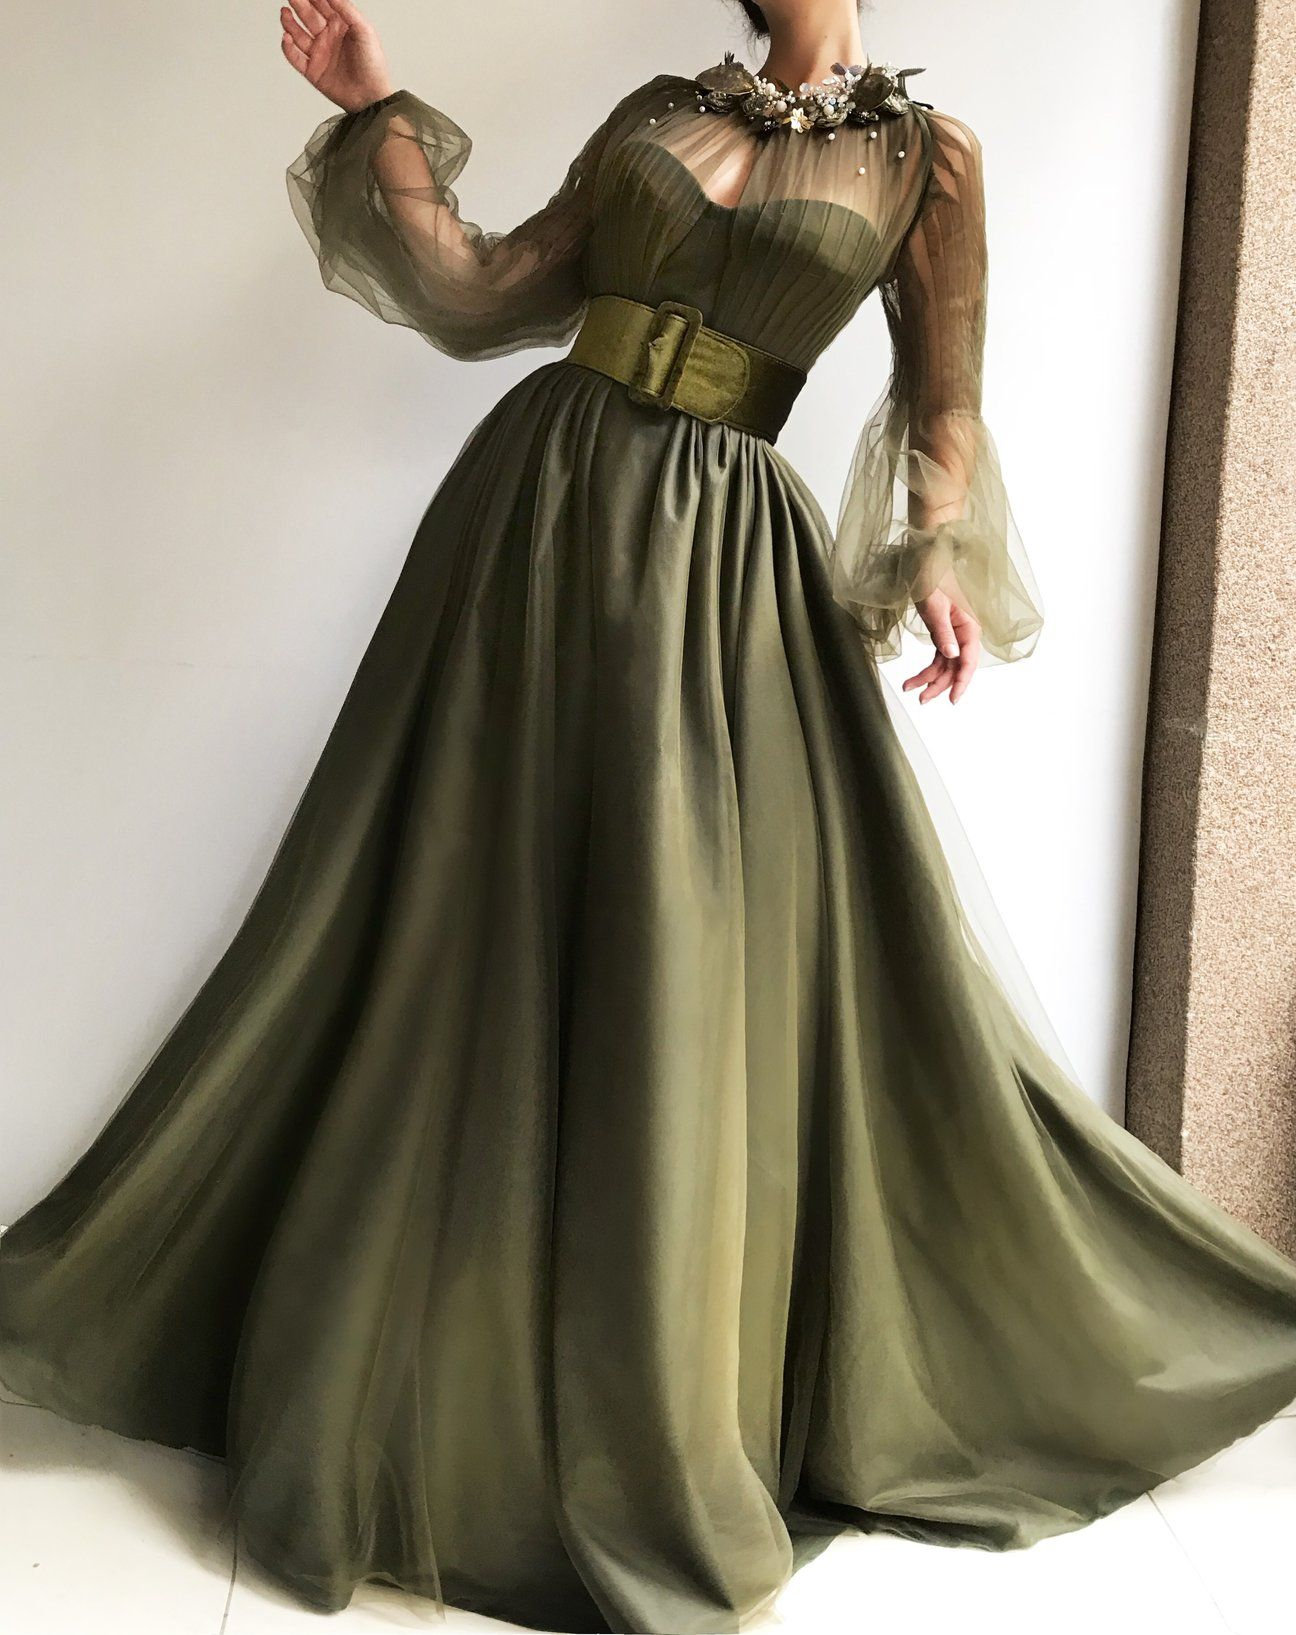 Mossy Princess TMD Gown #flowerdresses